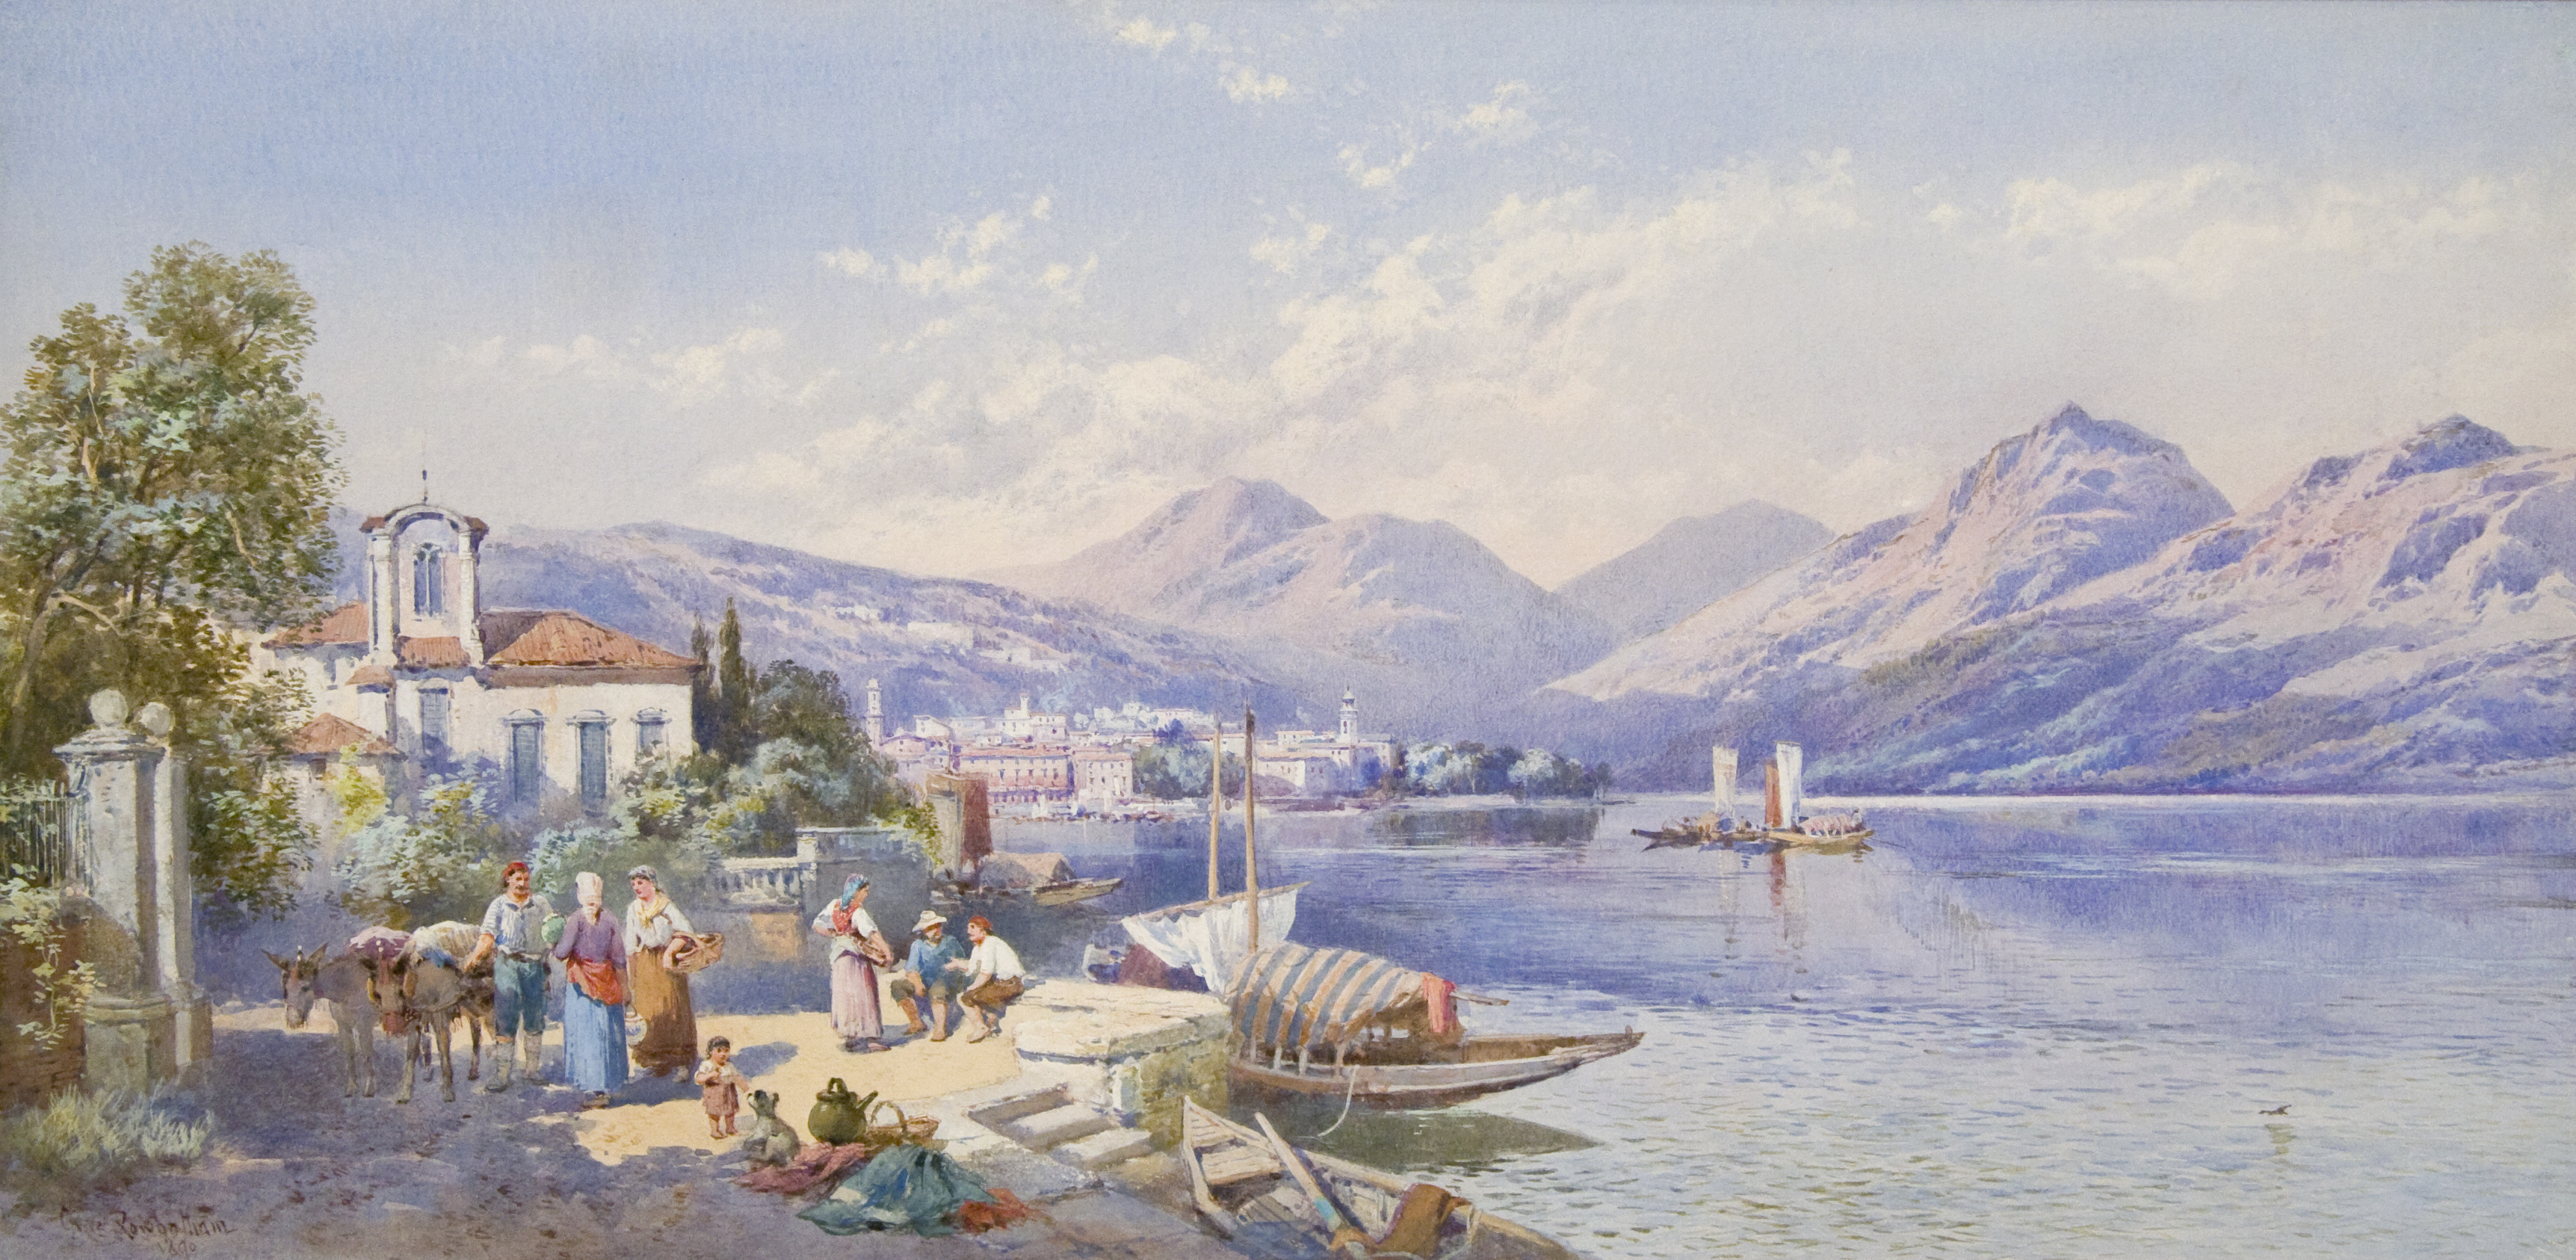 View of Lugano